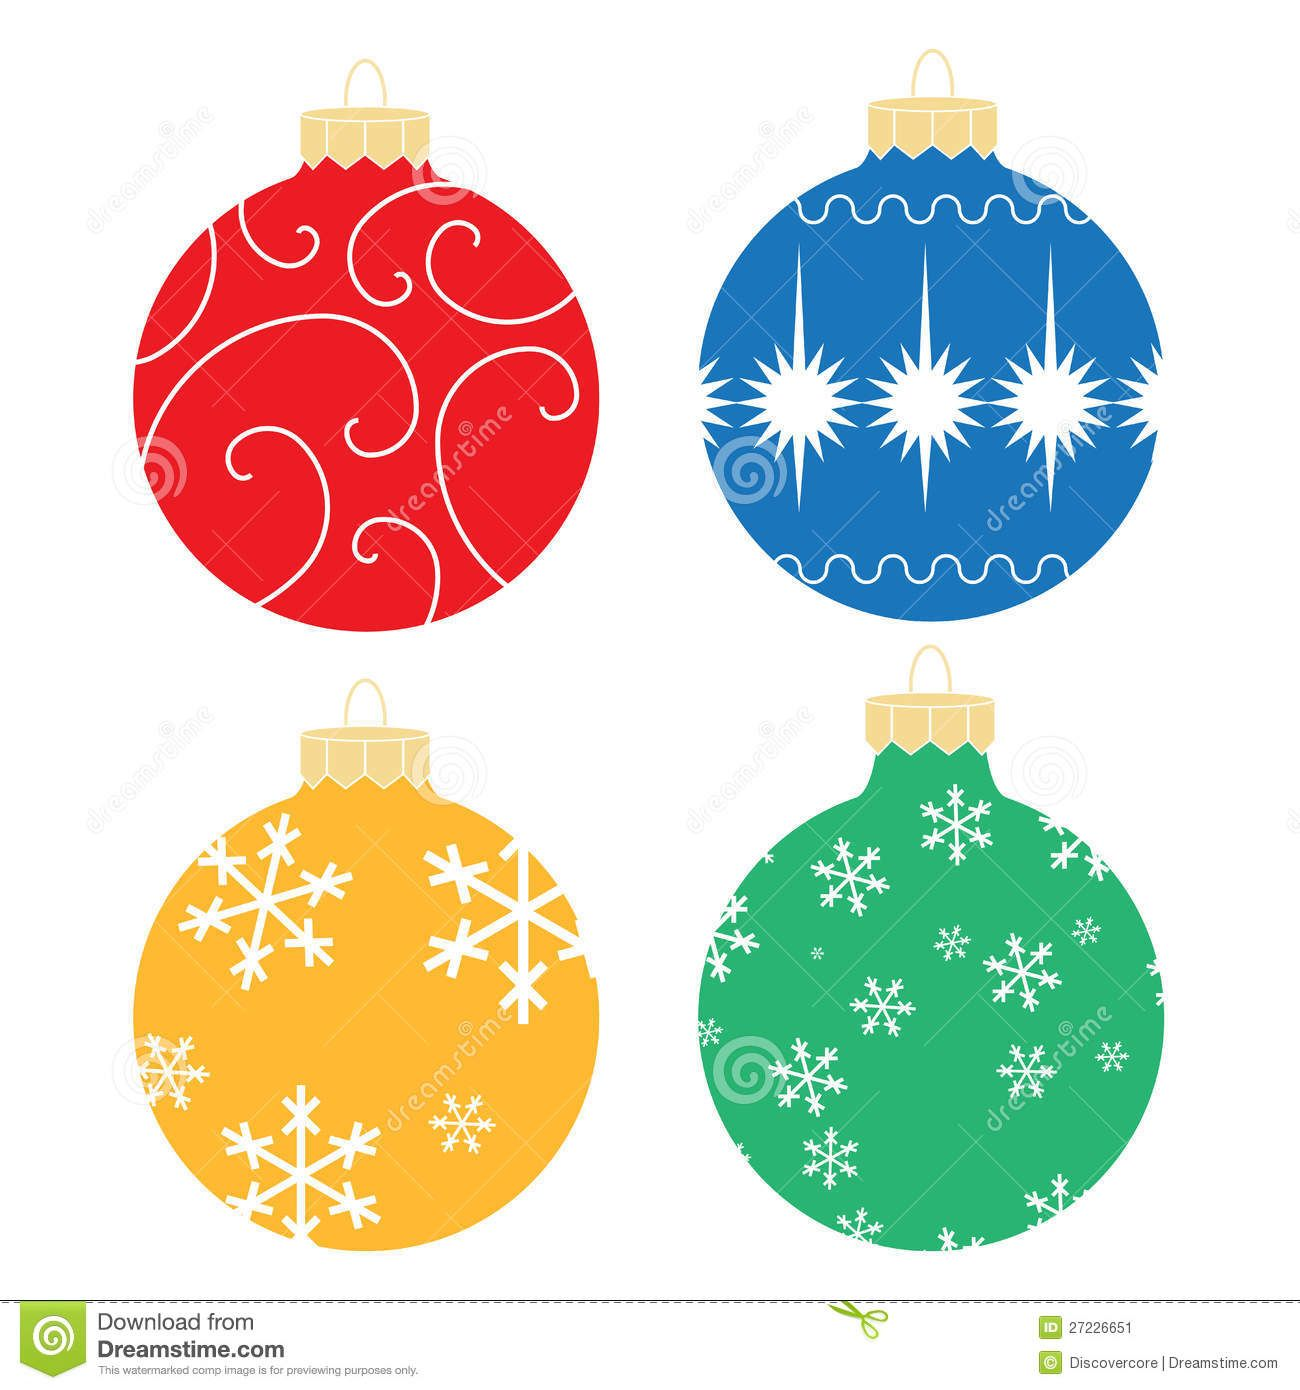 Charming Christmas Ornament Illustration Part - 9: Illustrated Christmas Ornaments Featuring Various Patterns And Styles.